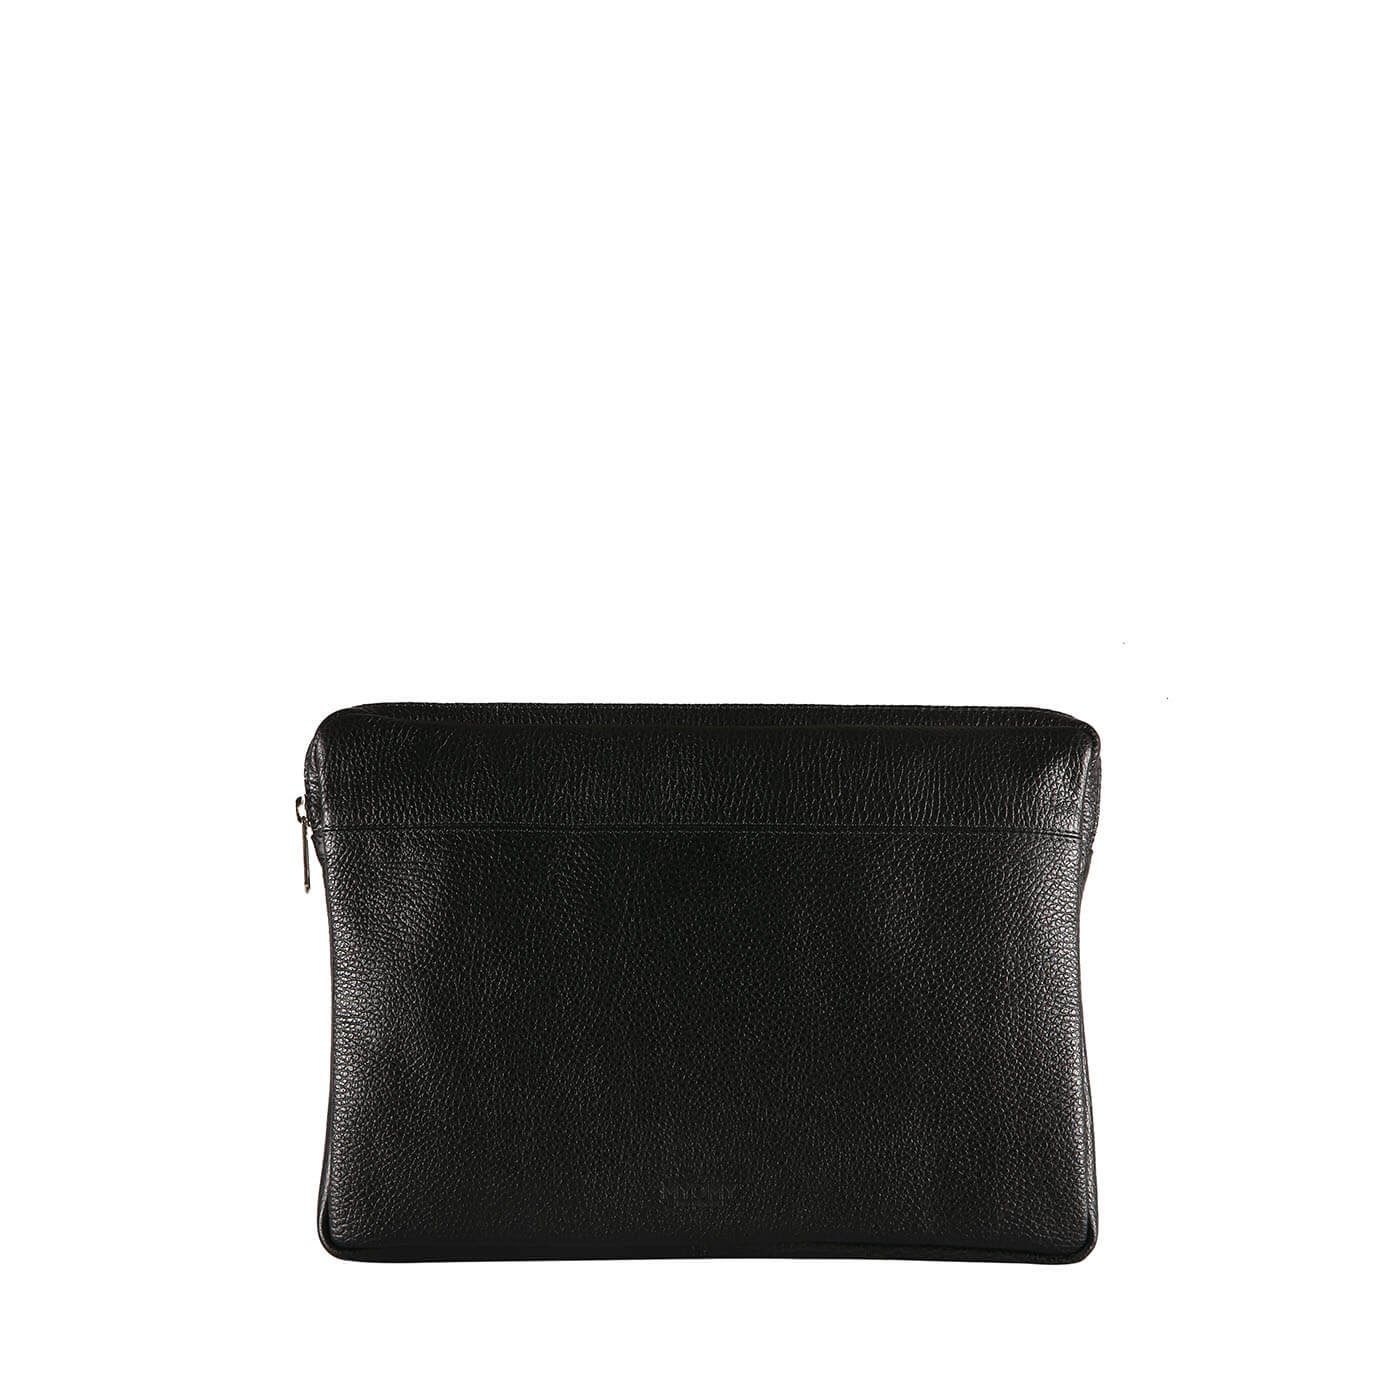 MY PHILIP BAG Laptop Sleeve 13 inch – rambler black